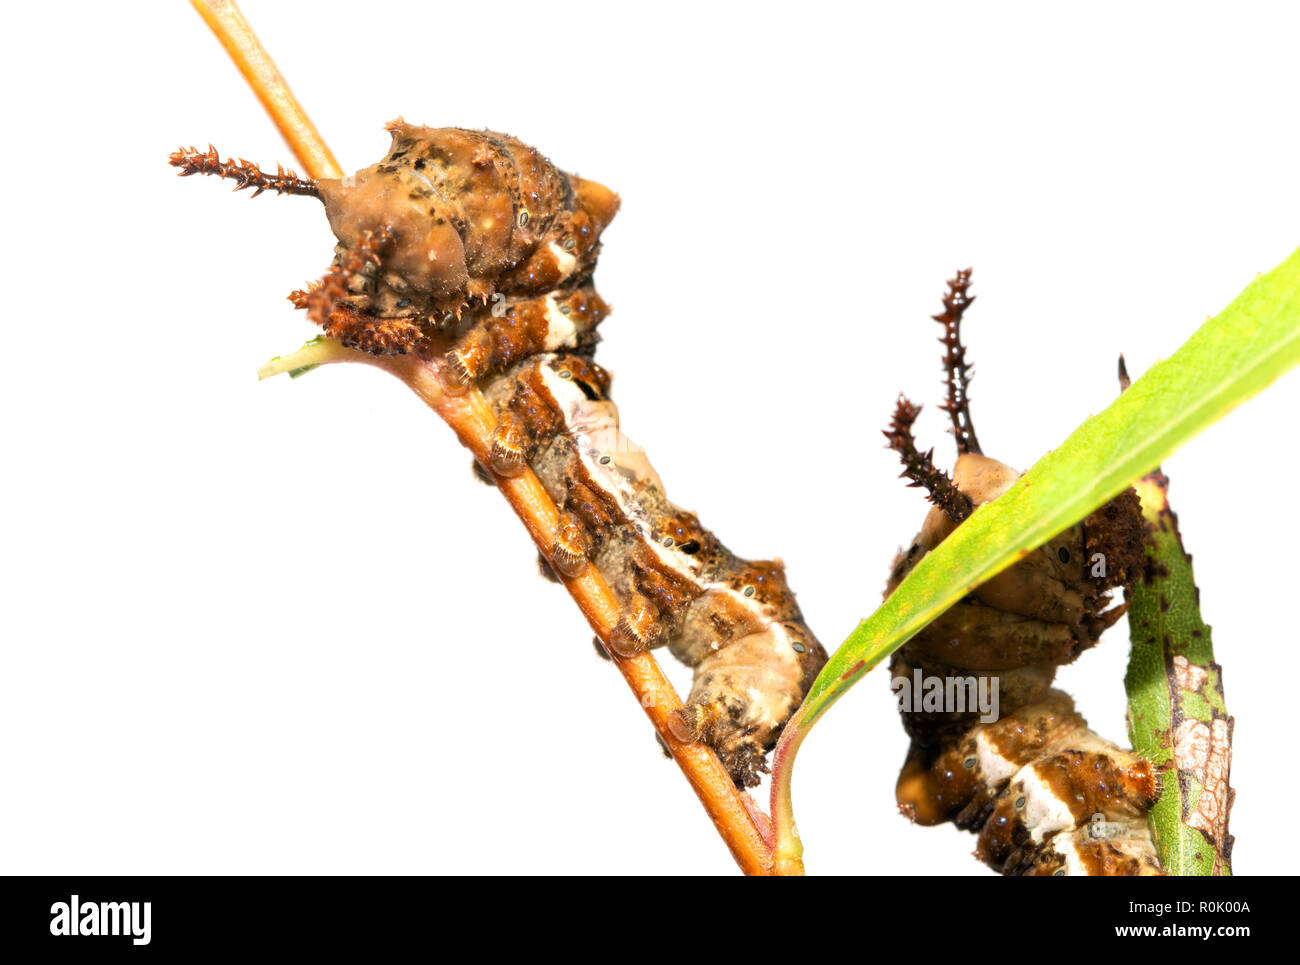 Fifth instar of Viceroy butterfly caterpillar, with spiny horns, resting on a Willow twig, with another behind it eating a leaf - Stock Image